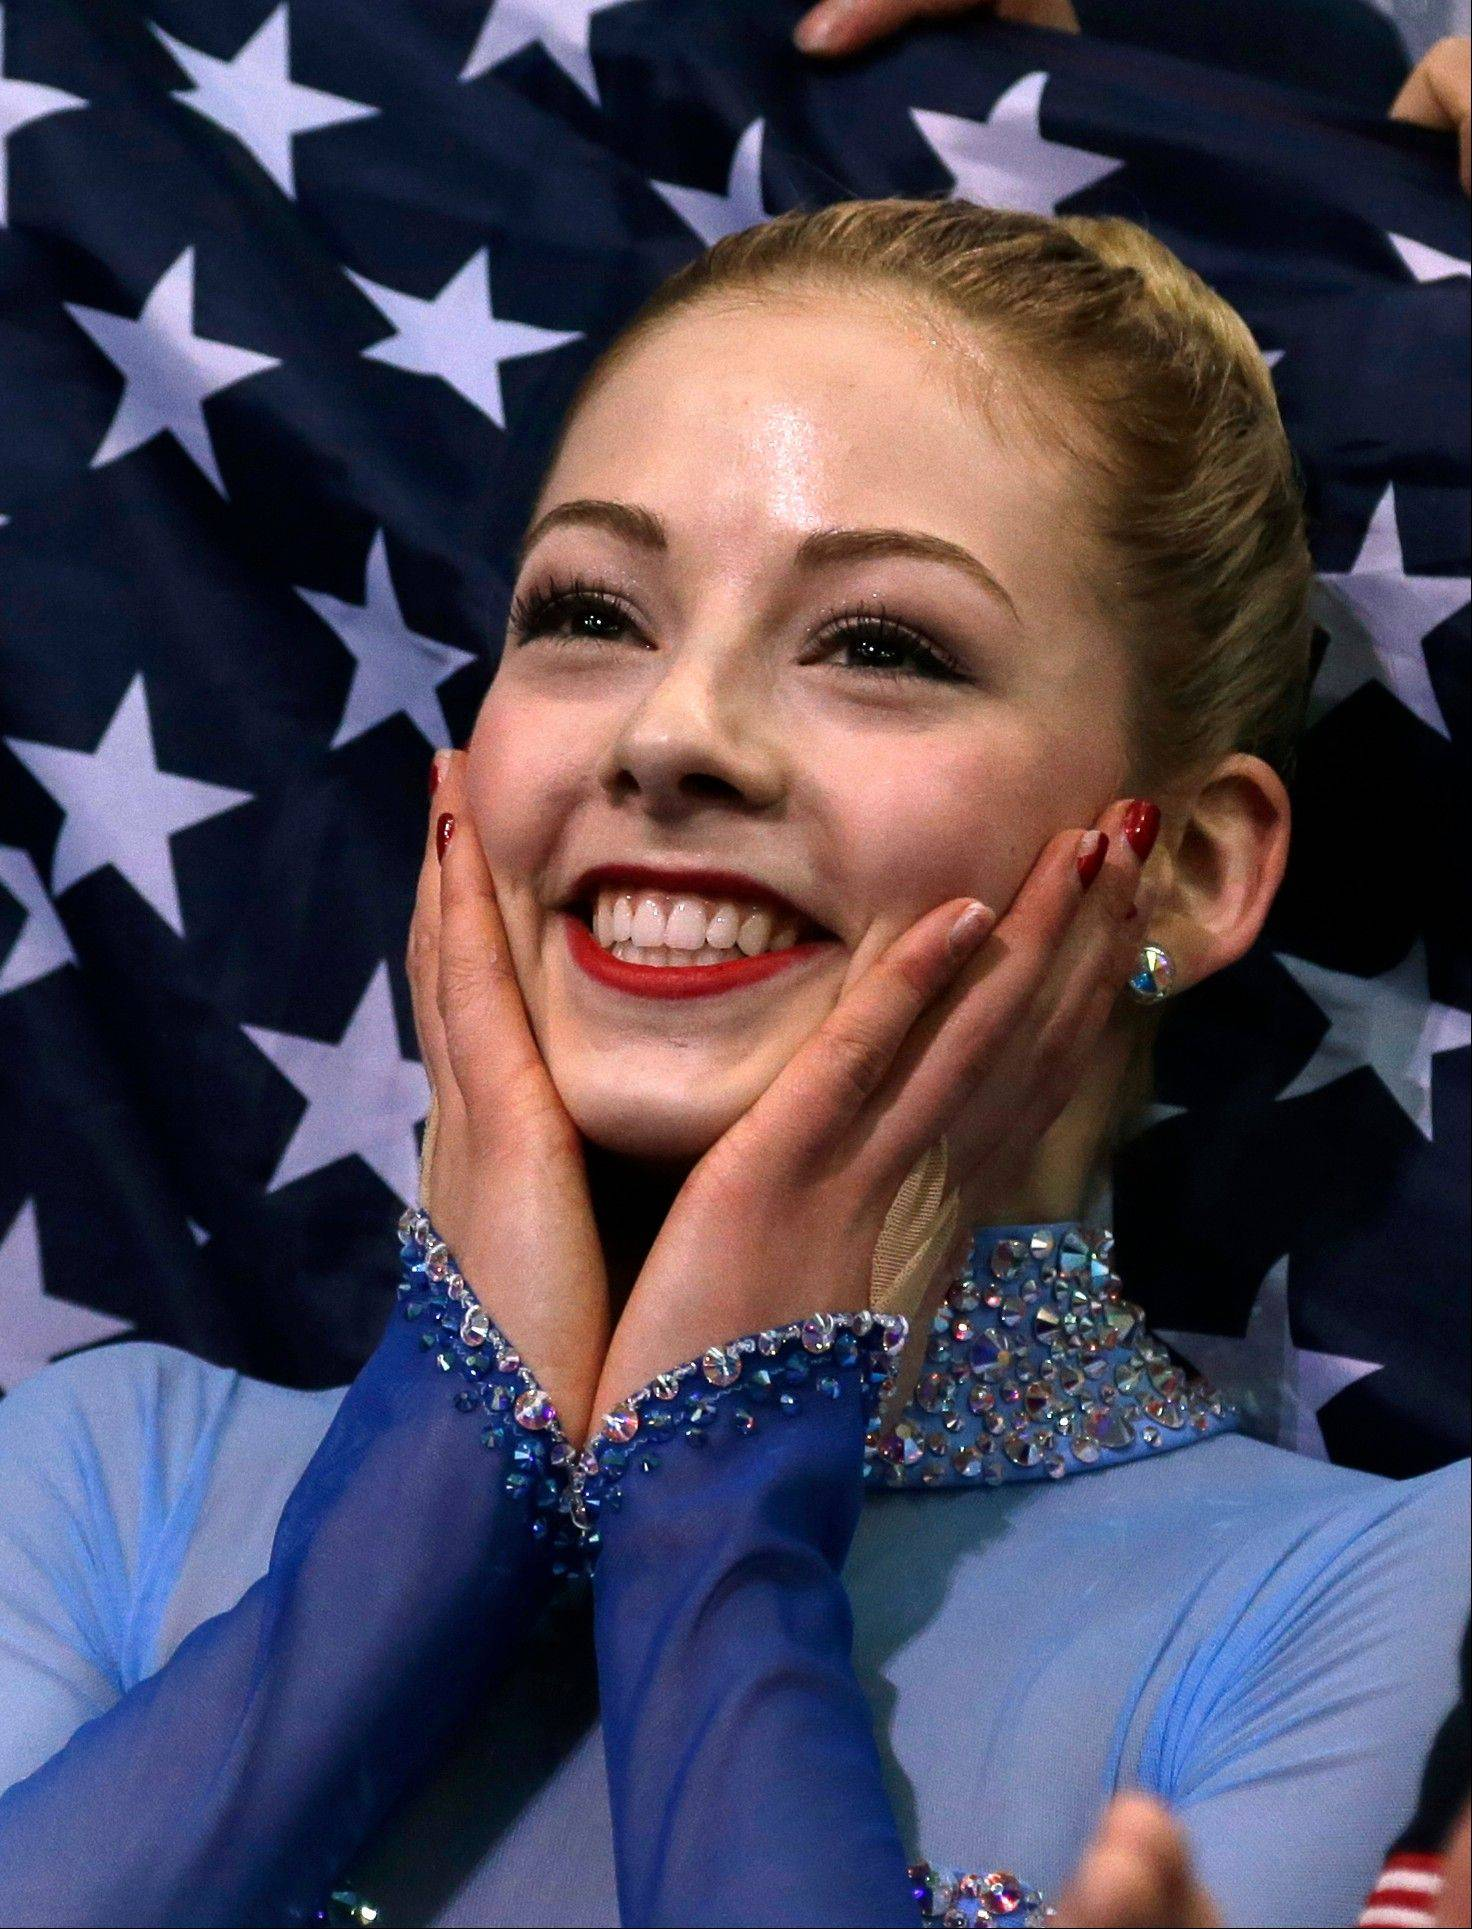 Gracie Gold of the United States sits in the results area after competing in the women's team free skate figure skating competition at the Iceberg Skating Palace during the 2014 Winter Olympics, Sunday, Feb. 9, 2014, in Sochi, Russia.